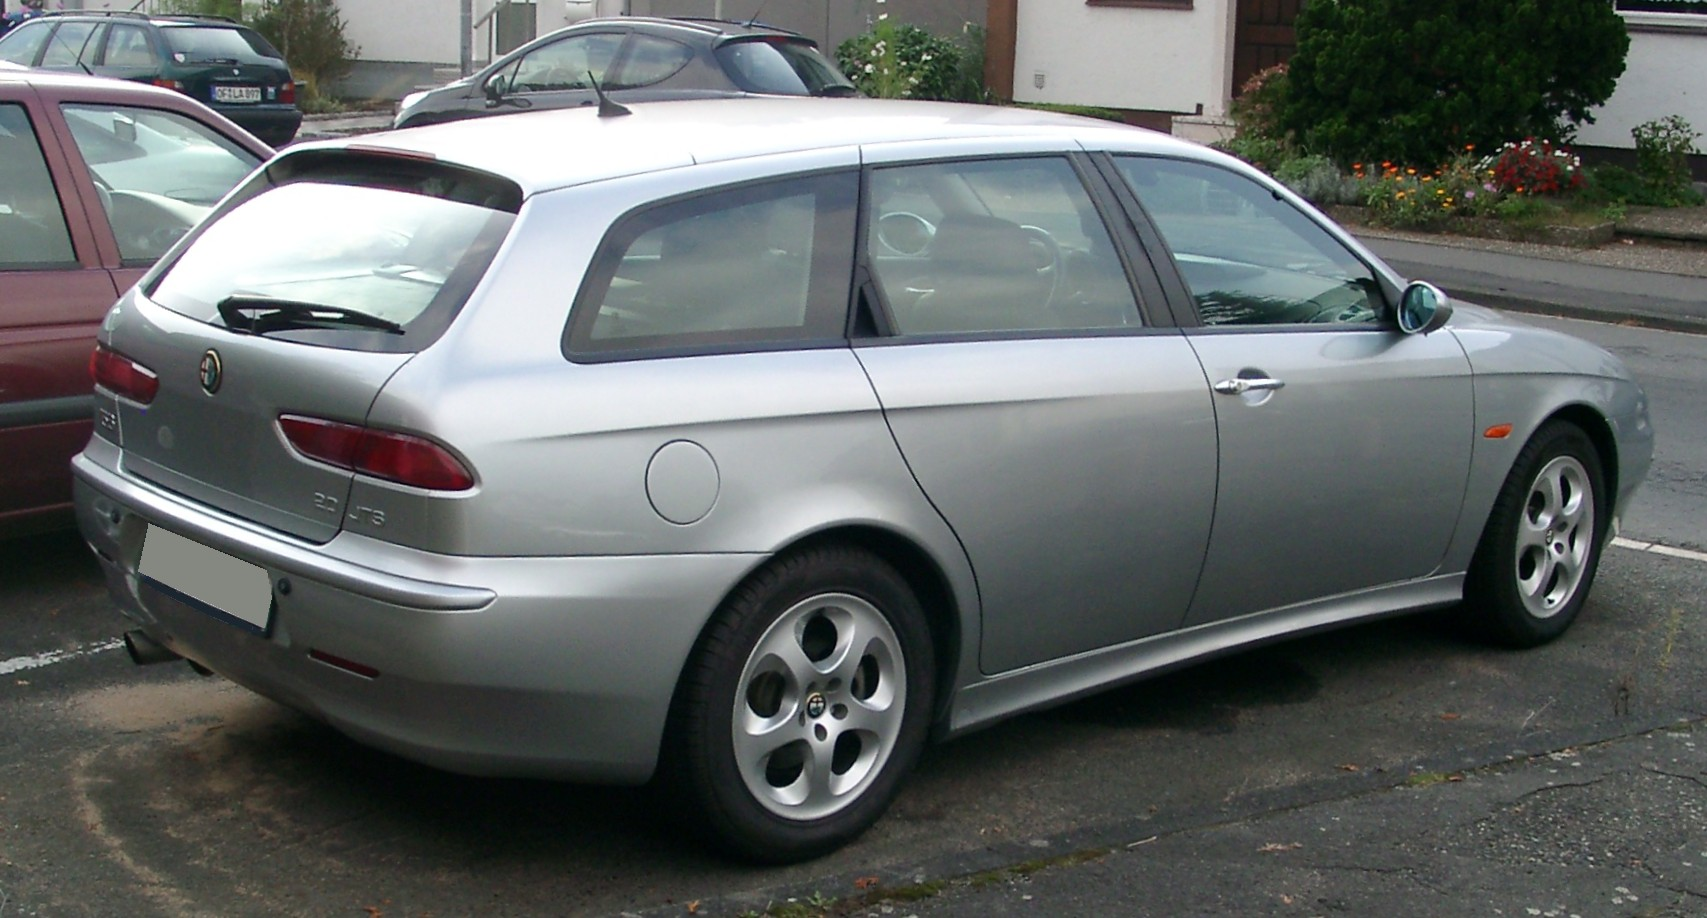 Description Alfa Romeo 156 Sportwagon rear 20071004.jpg